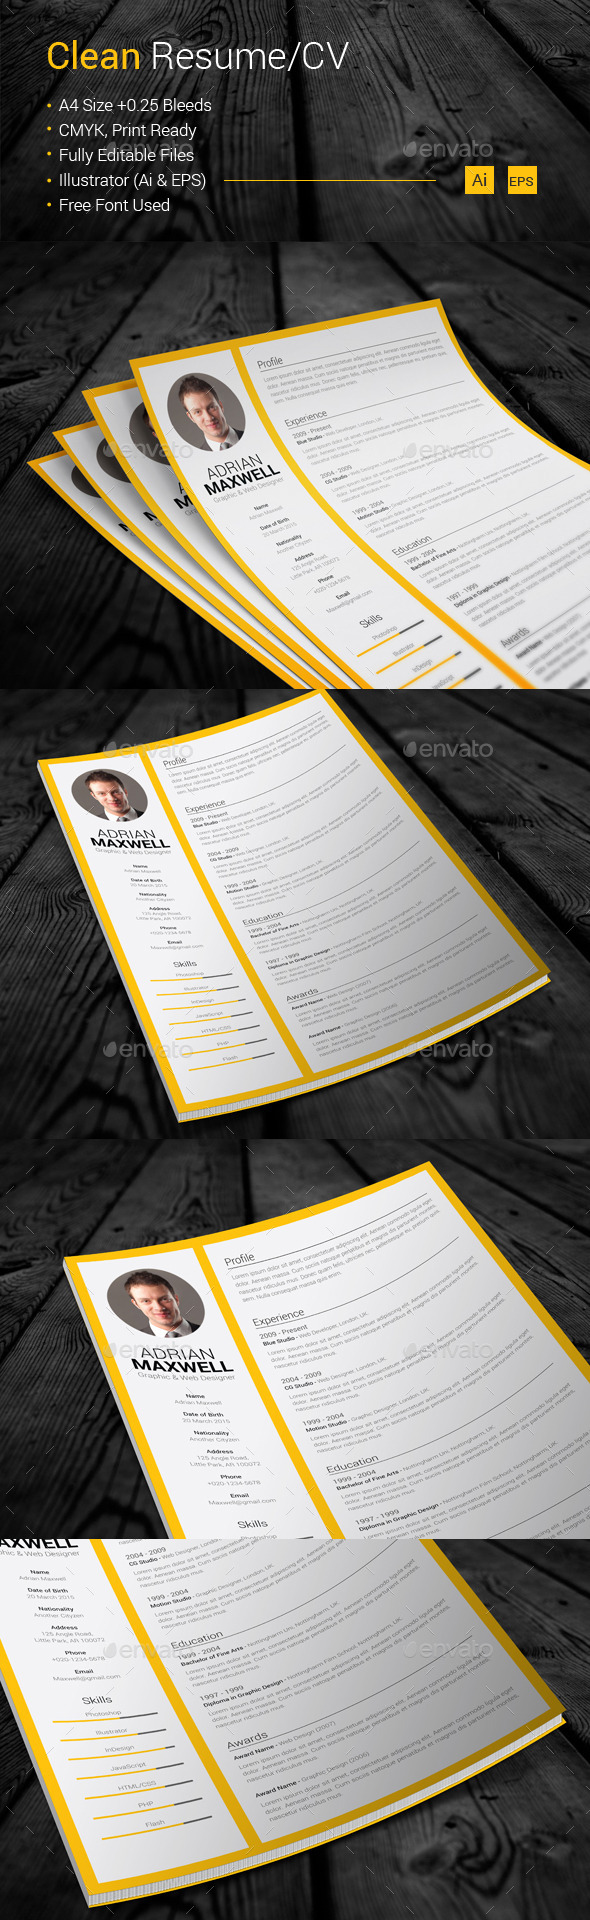 GraphicRiver Clean Resume CV 10854883